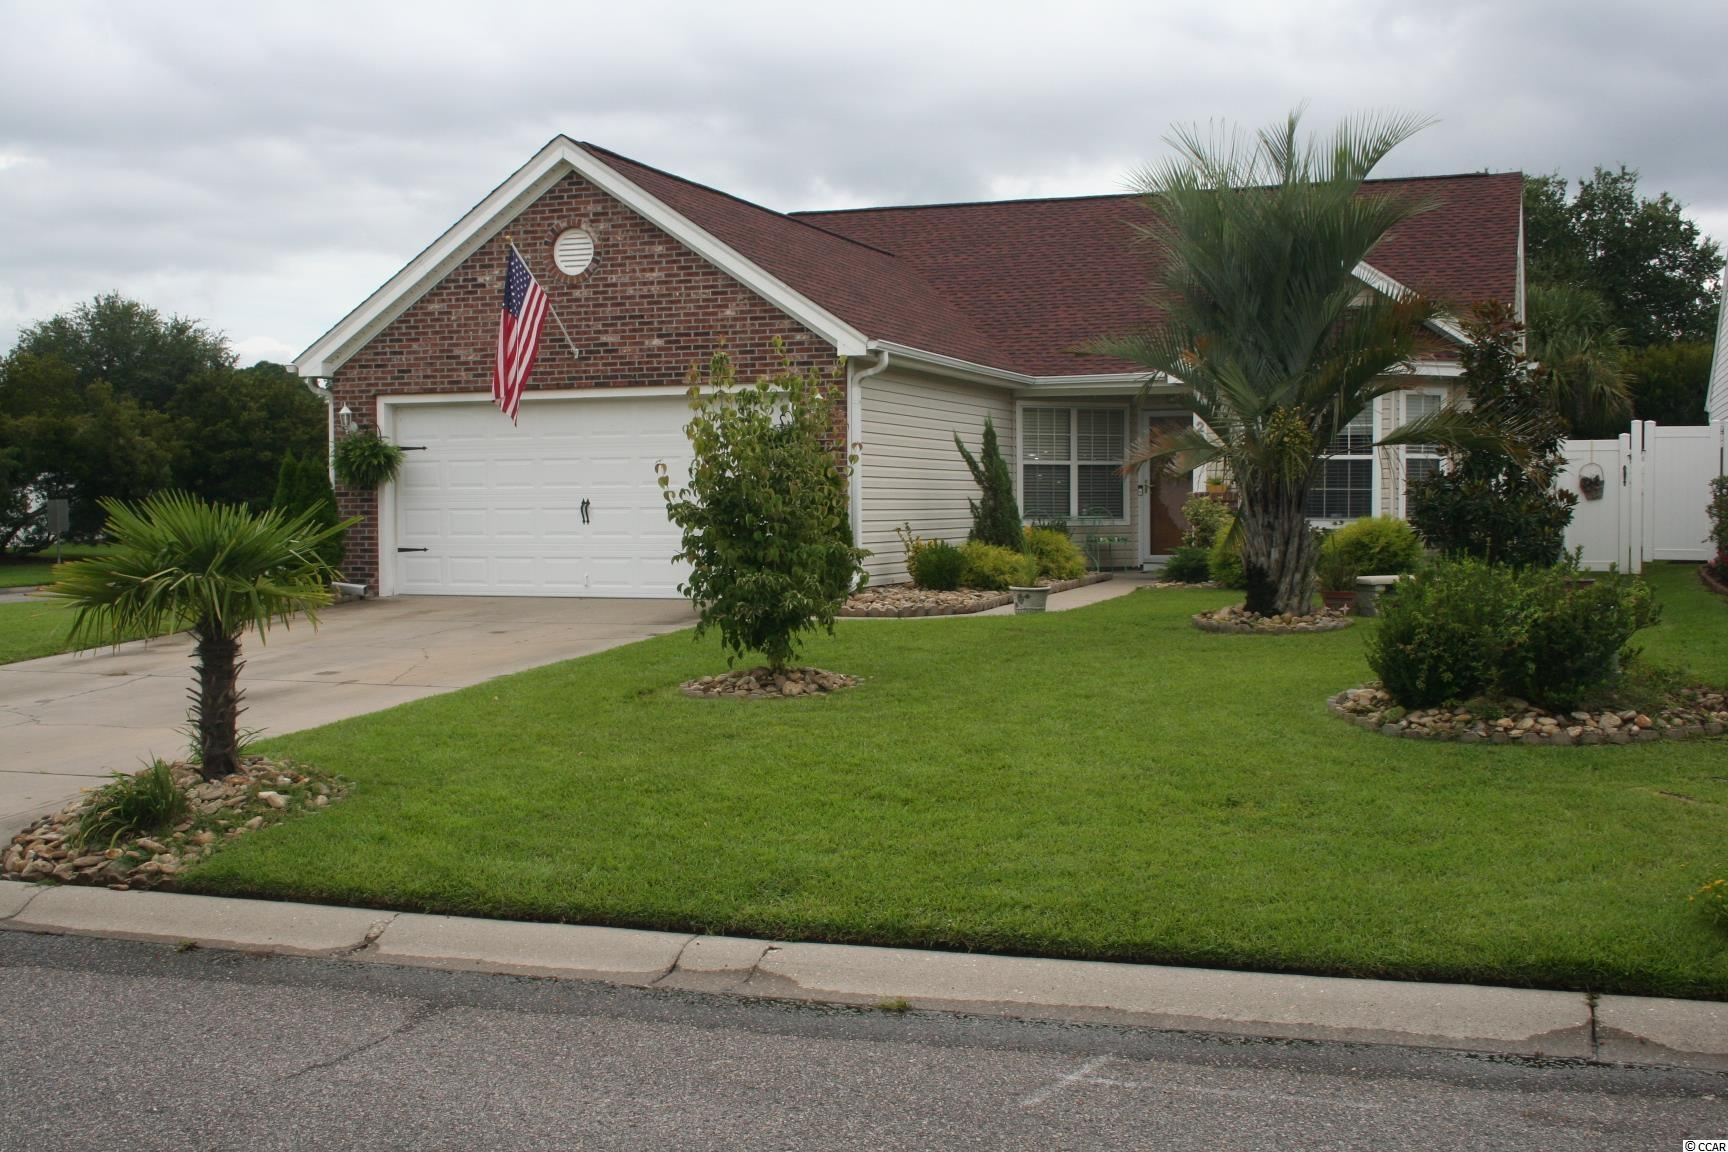 This home has it all. From this exquisite home's location in Avalon at Carolina Forest you have quick and easy access to all the Grand Strand has to offer. It is in move-in ready condition with three bedrooms and two baths. After a busy day, relax in the spa/hot tub in your private fully fenced backyard with concrete patio, mature trees, and lush landscaping. The inside of the home is just as pleasant; highlighted by an open floor plan with cathedral ceilings, new luxury vinyl plank floors, and numerous other touches. The home also features a new roof in 2019, security system, and the living area is wired for a surround sound system.  Don't want to go the beach? Avalon's amenity center features pools, playground, covered picnic area with grill, basketball and volleyball courts, and soccer and baseball fields. Square footage is approximate and not guaranteed. Buyer is responsible for verification.